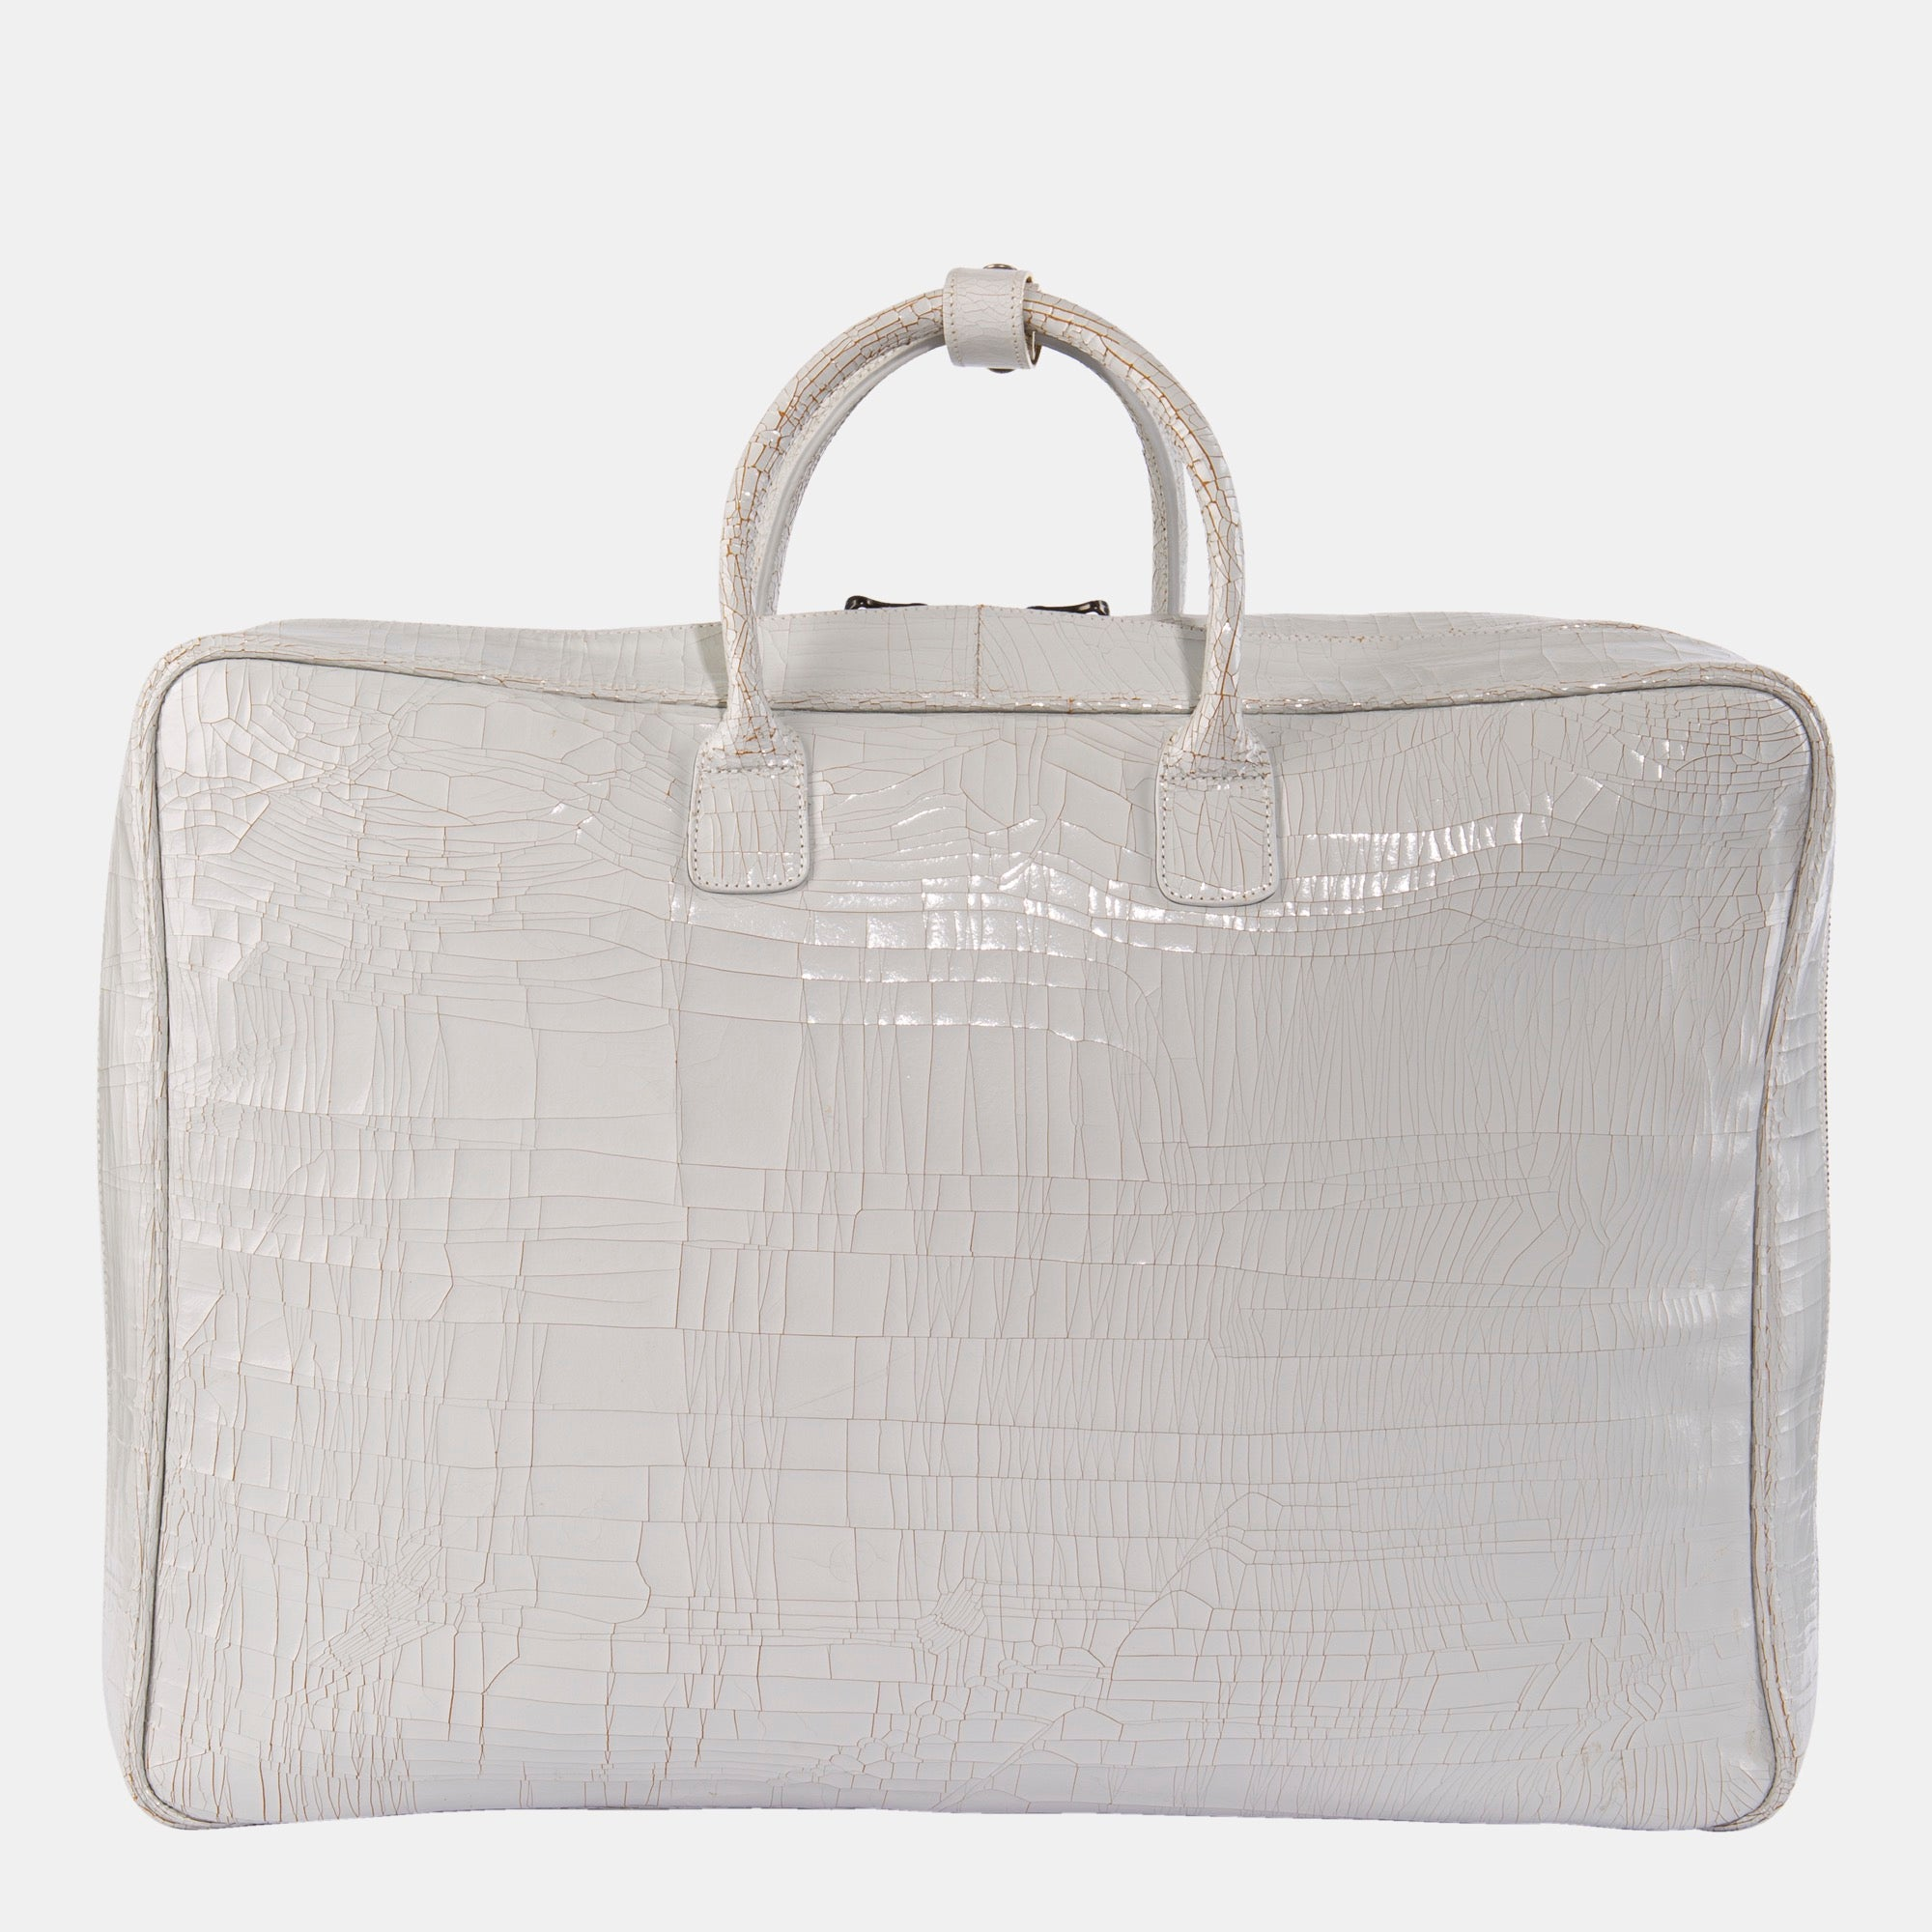 Luxury leather sustainable silk luggage carry-on carryall